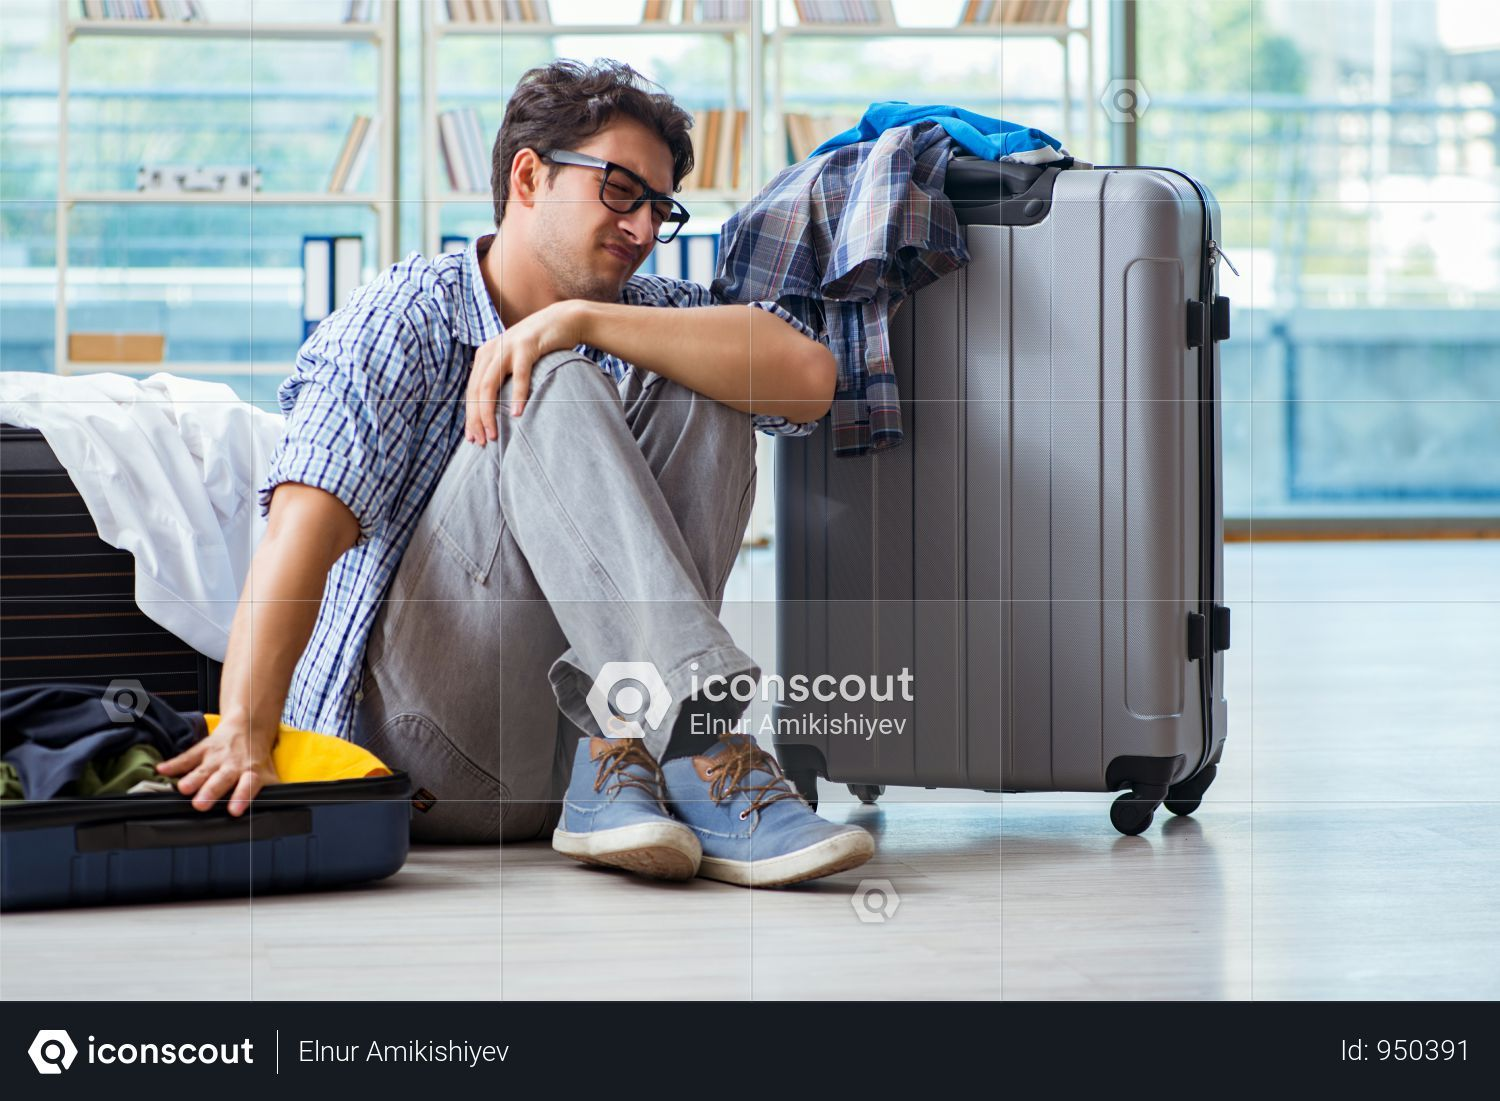 Premium Young Man Preparing For Vacation Travel Photo Download In Png Jpg Format Vacation Trips Travel Photos Vacation Photos